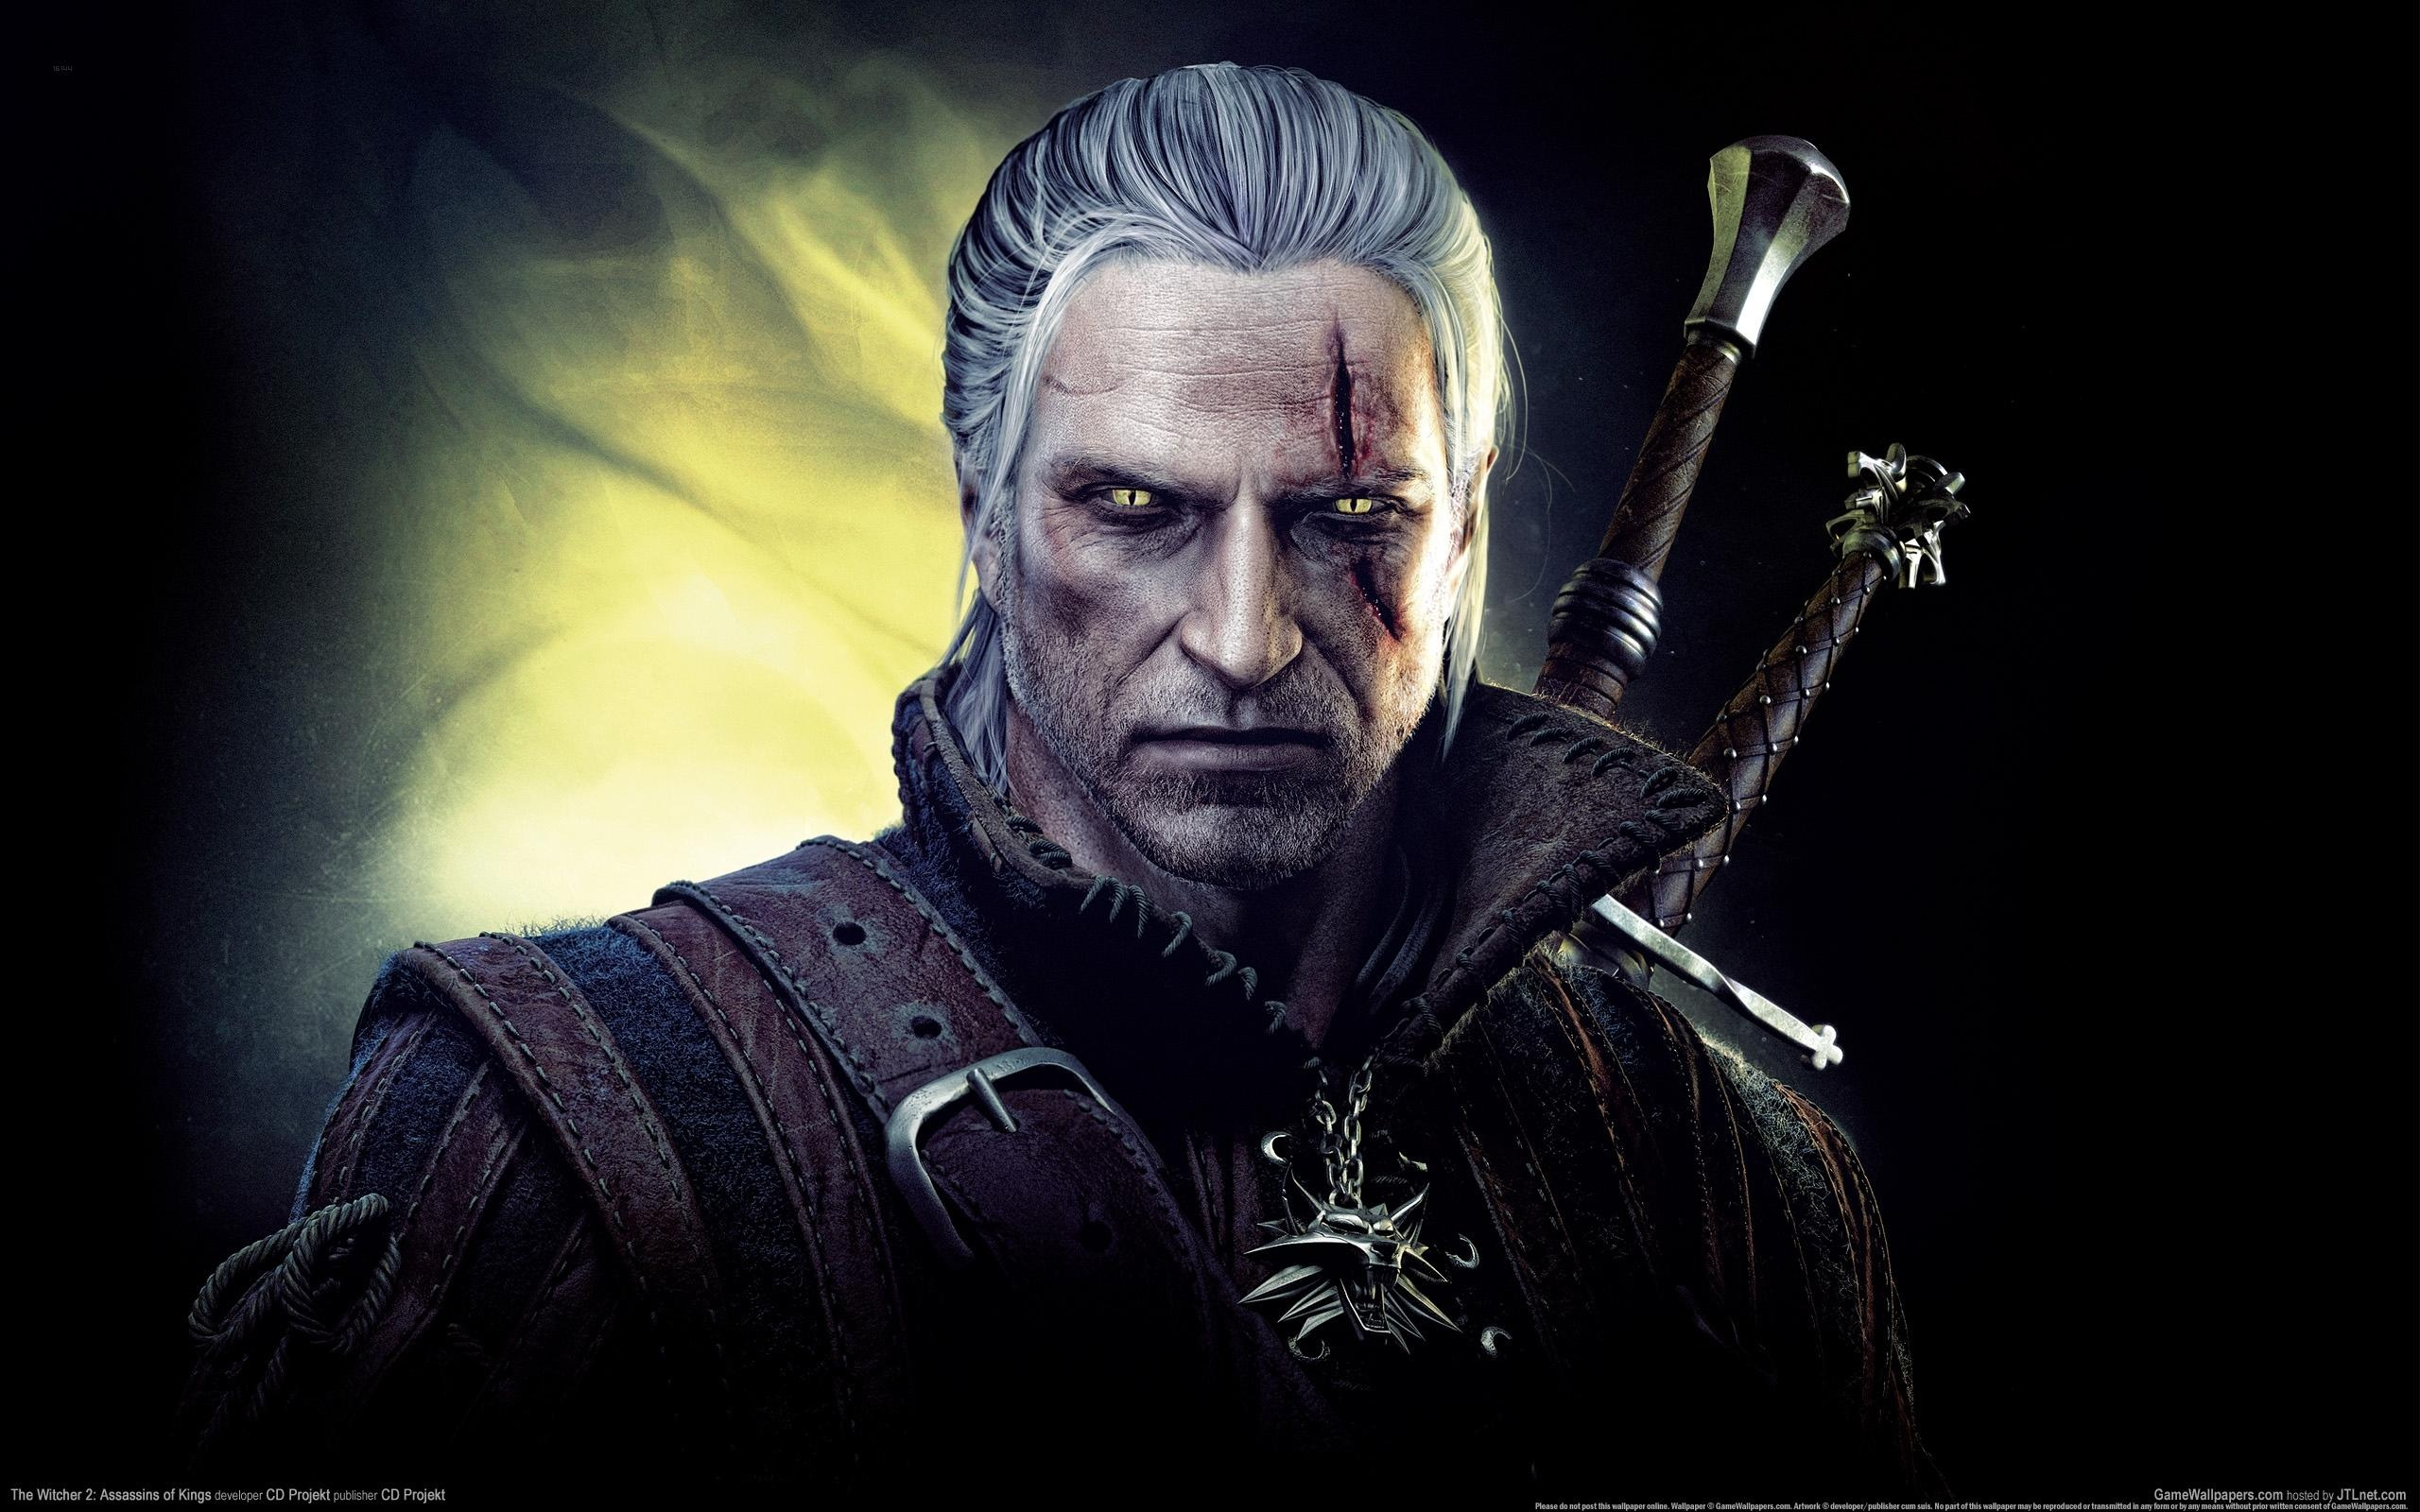 The Witcher 2: Assassins of Kings wallpaper - 2560x1600